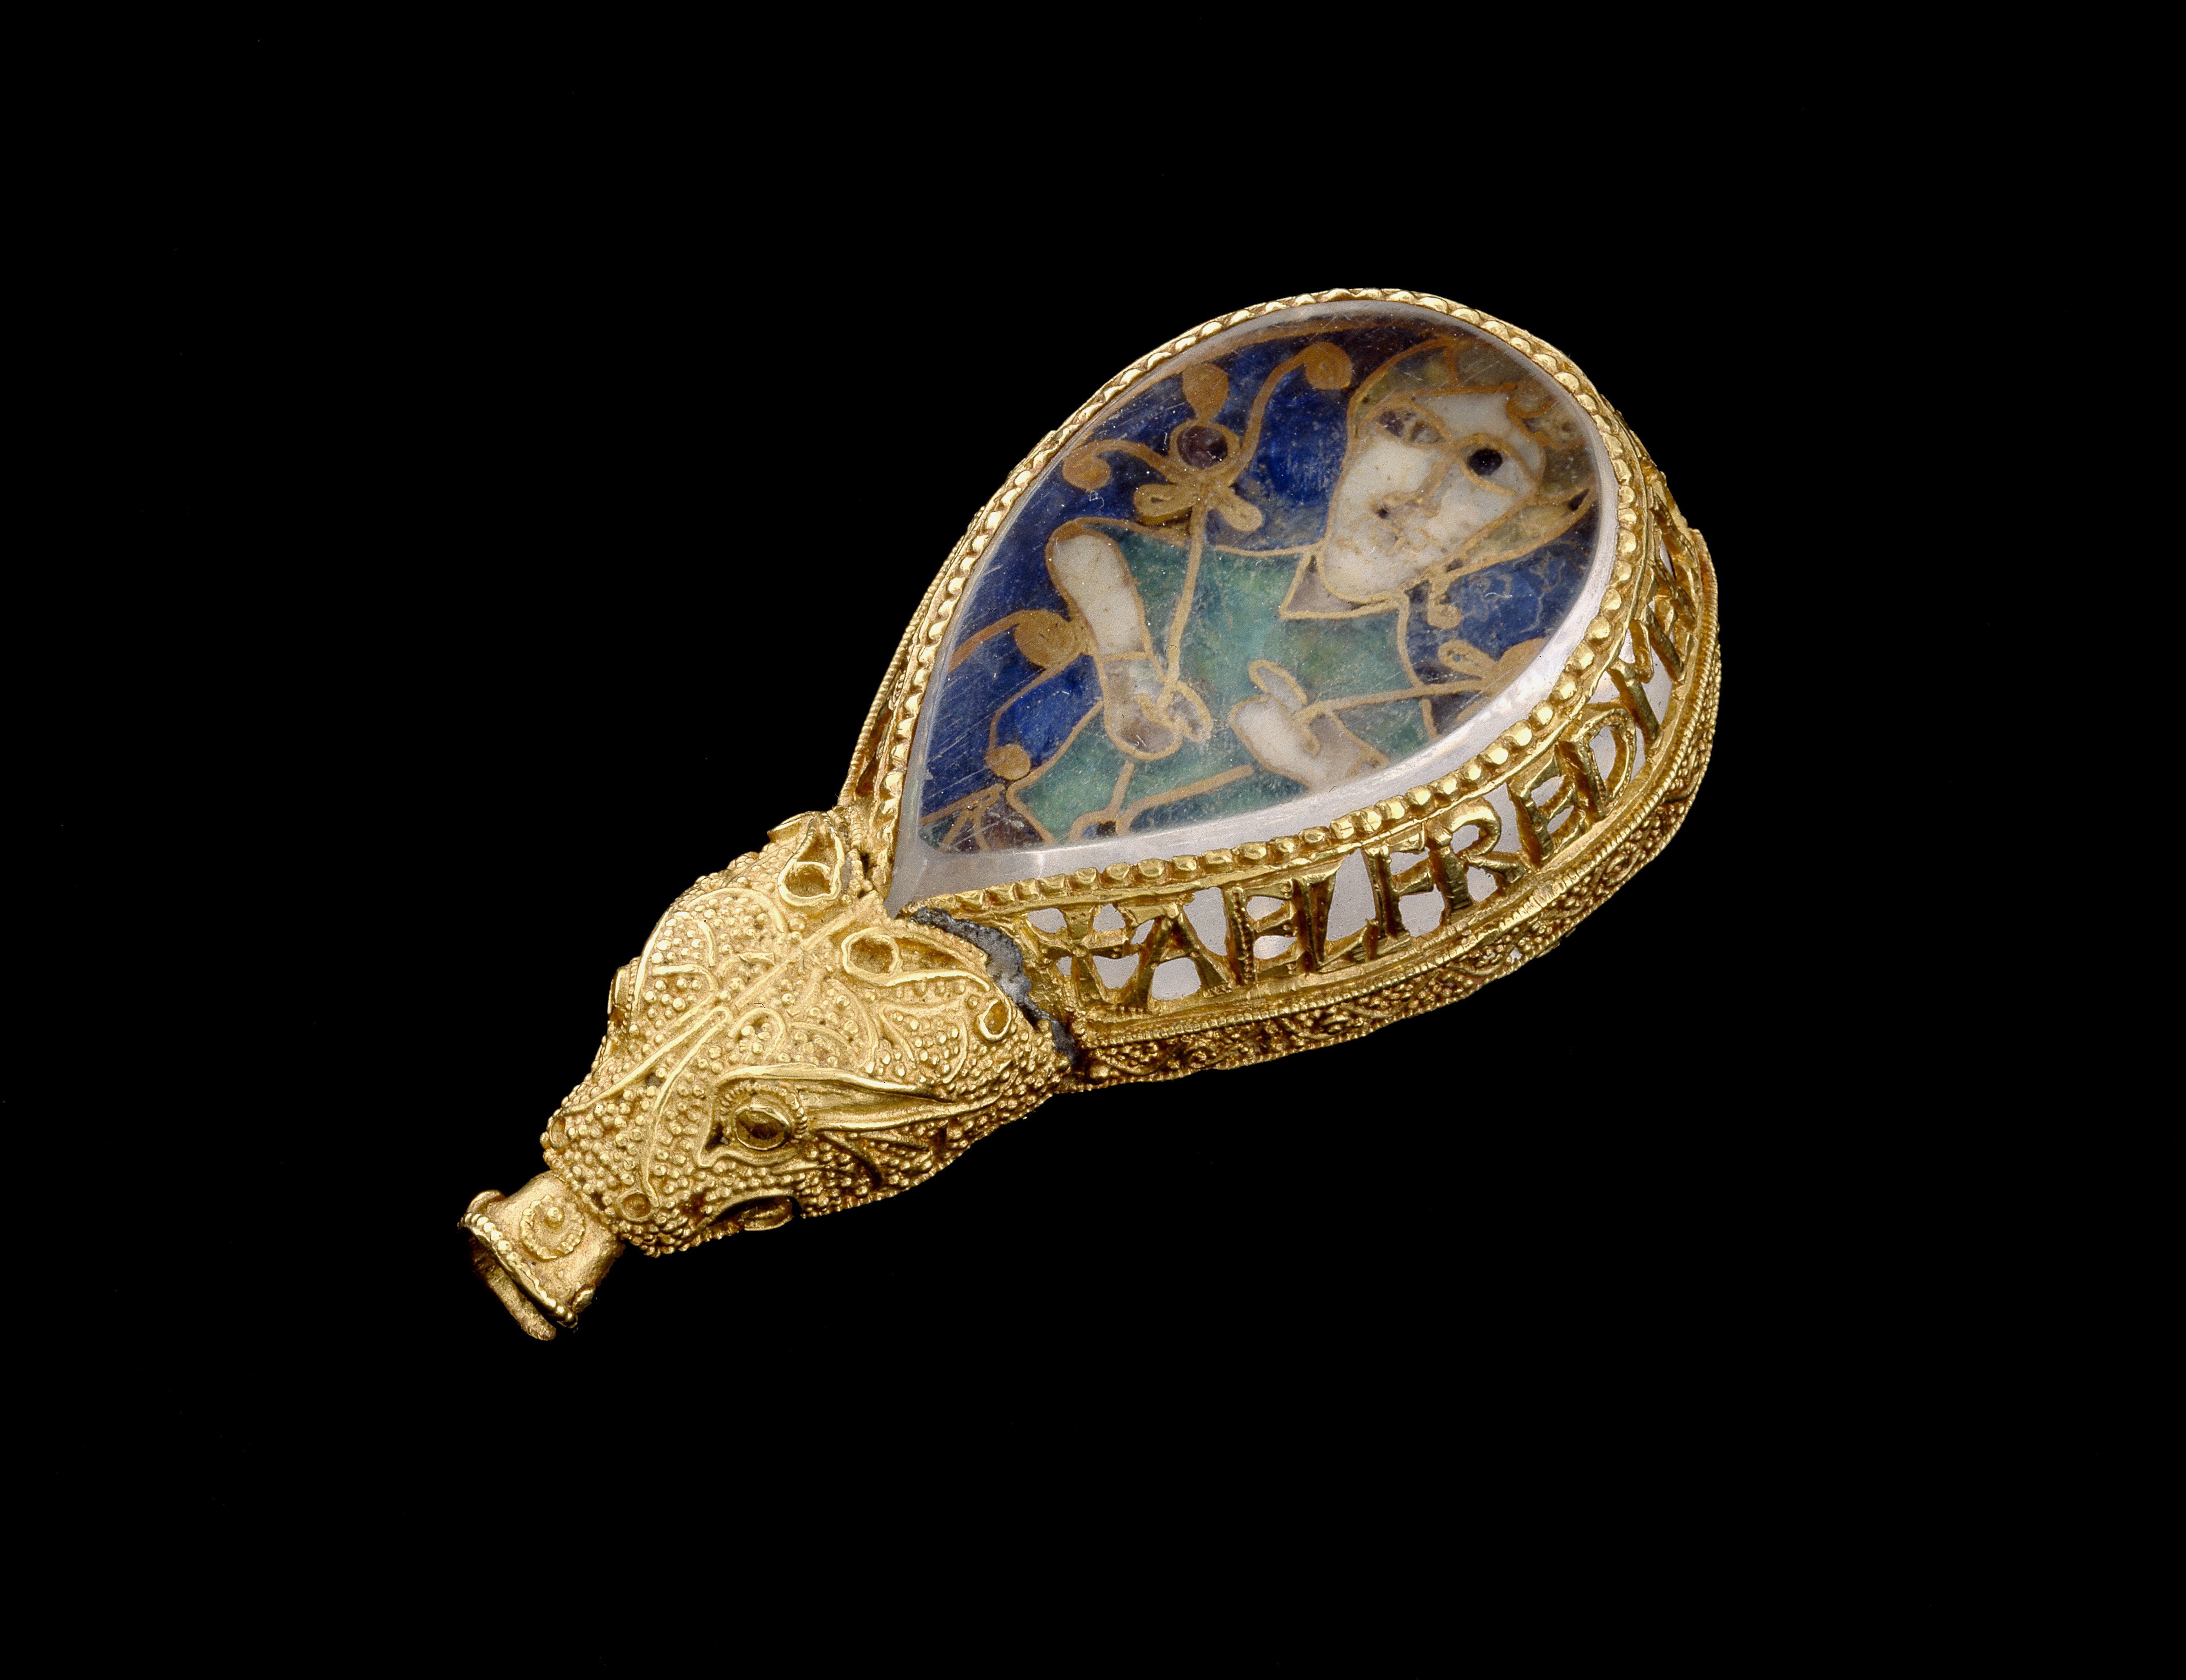 Alfred Jewel (c) Ashmolean Museum, University of Oxford